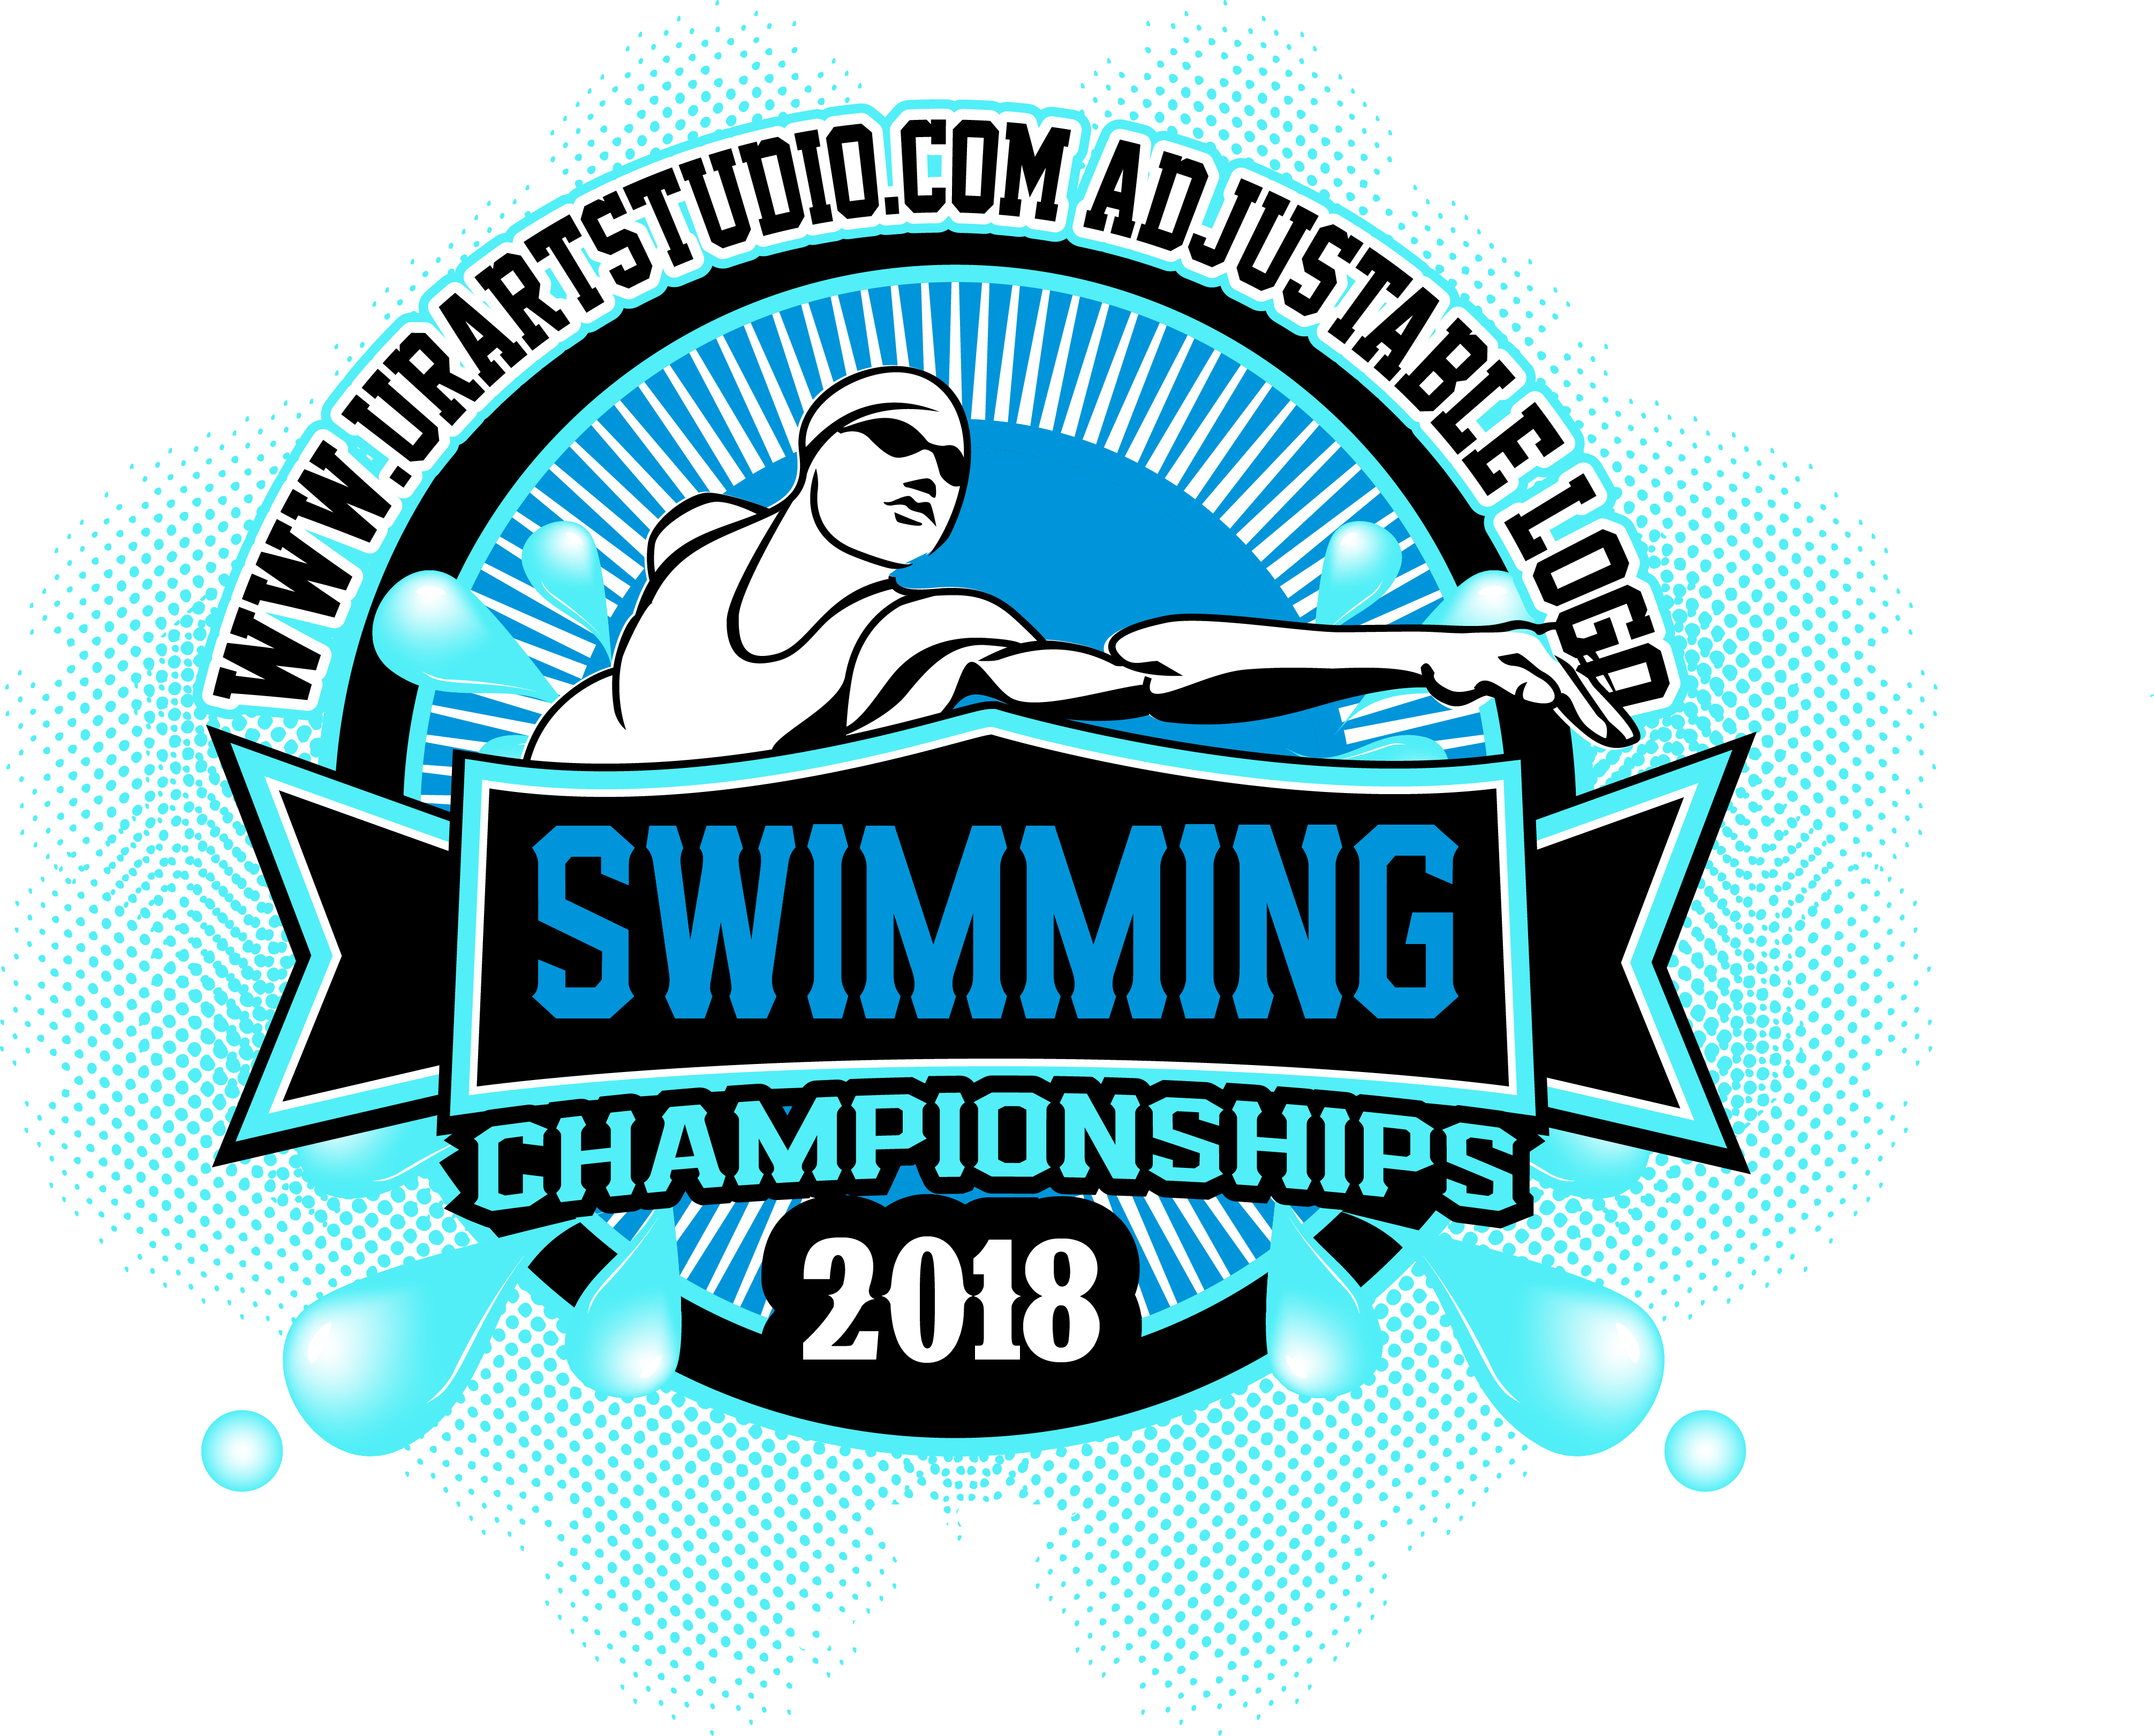 Swimming clipart for t shirts png library library COLOR SEPARATED SWIMMING CHAMPIONSHIPS 2018 T-shirt vector logo design for  print png library library